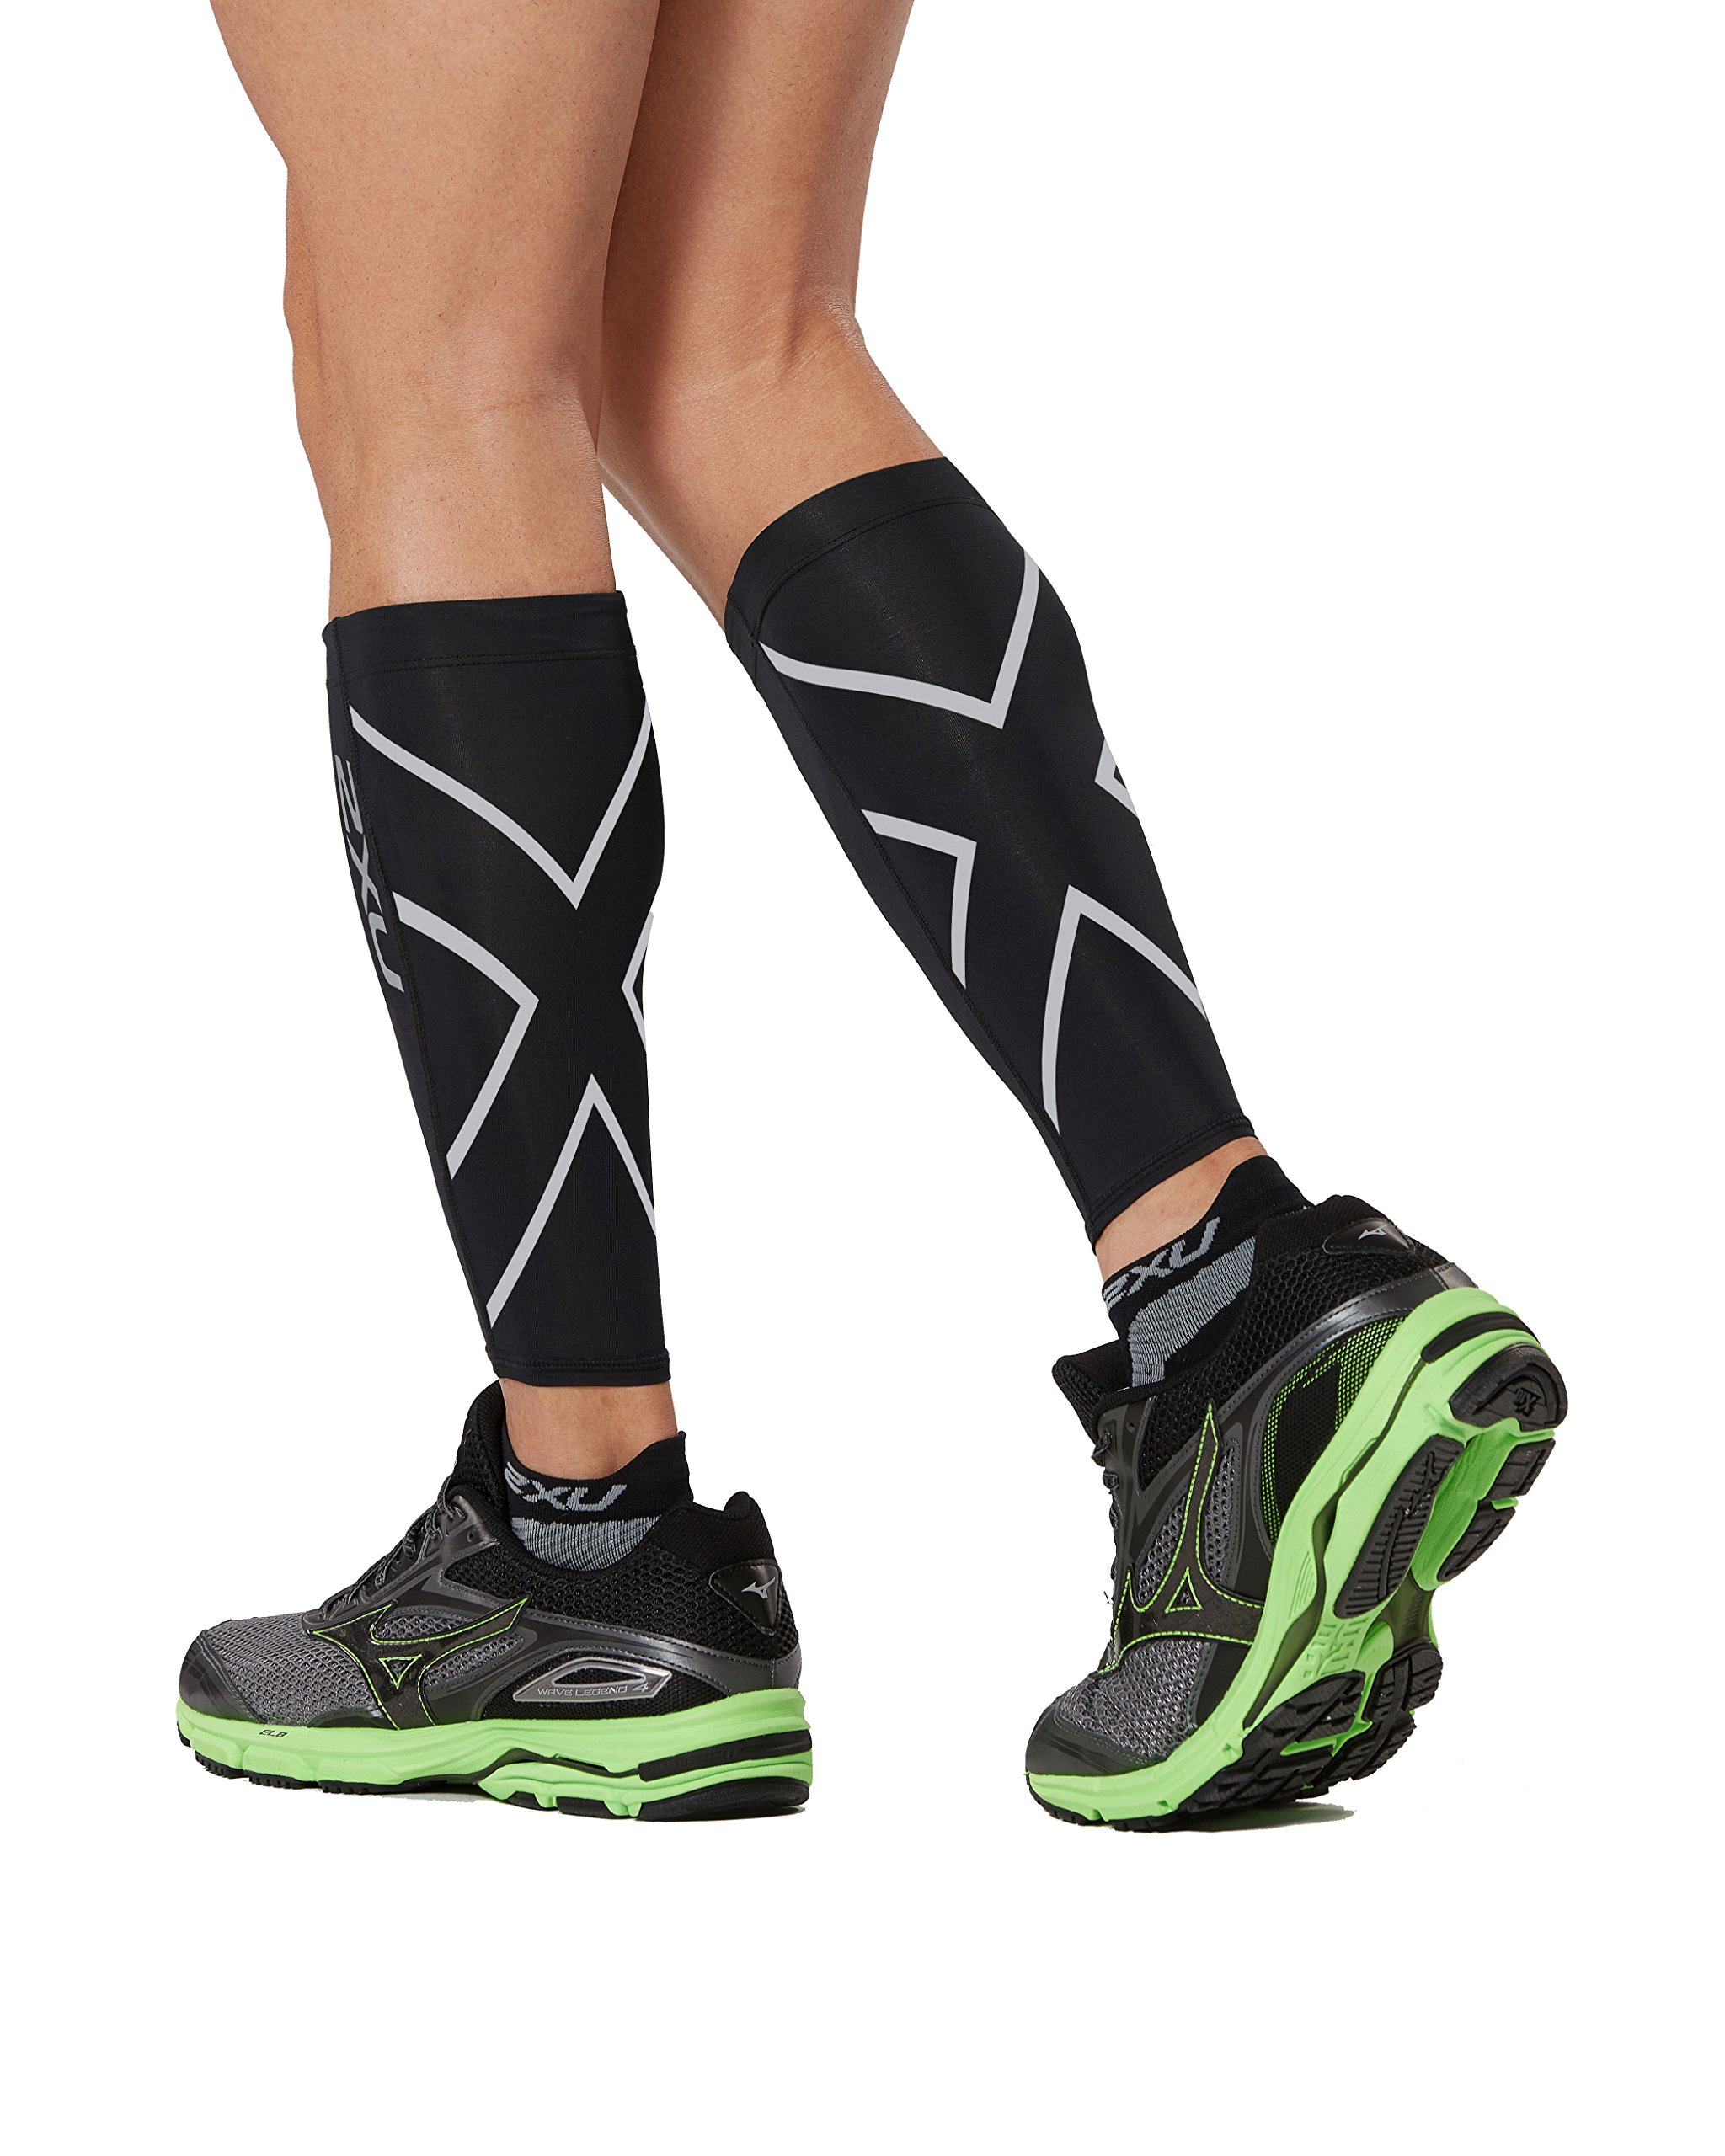 2XU Compression Calf Guards, Black/Black, X-Large